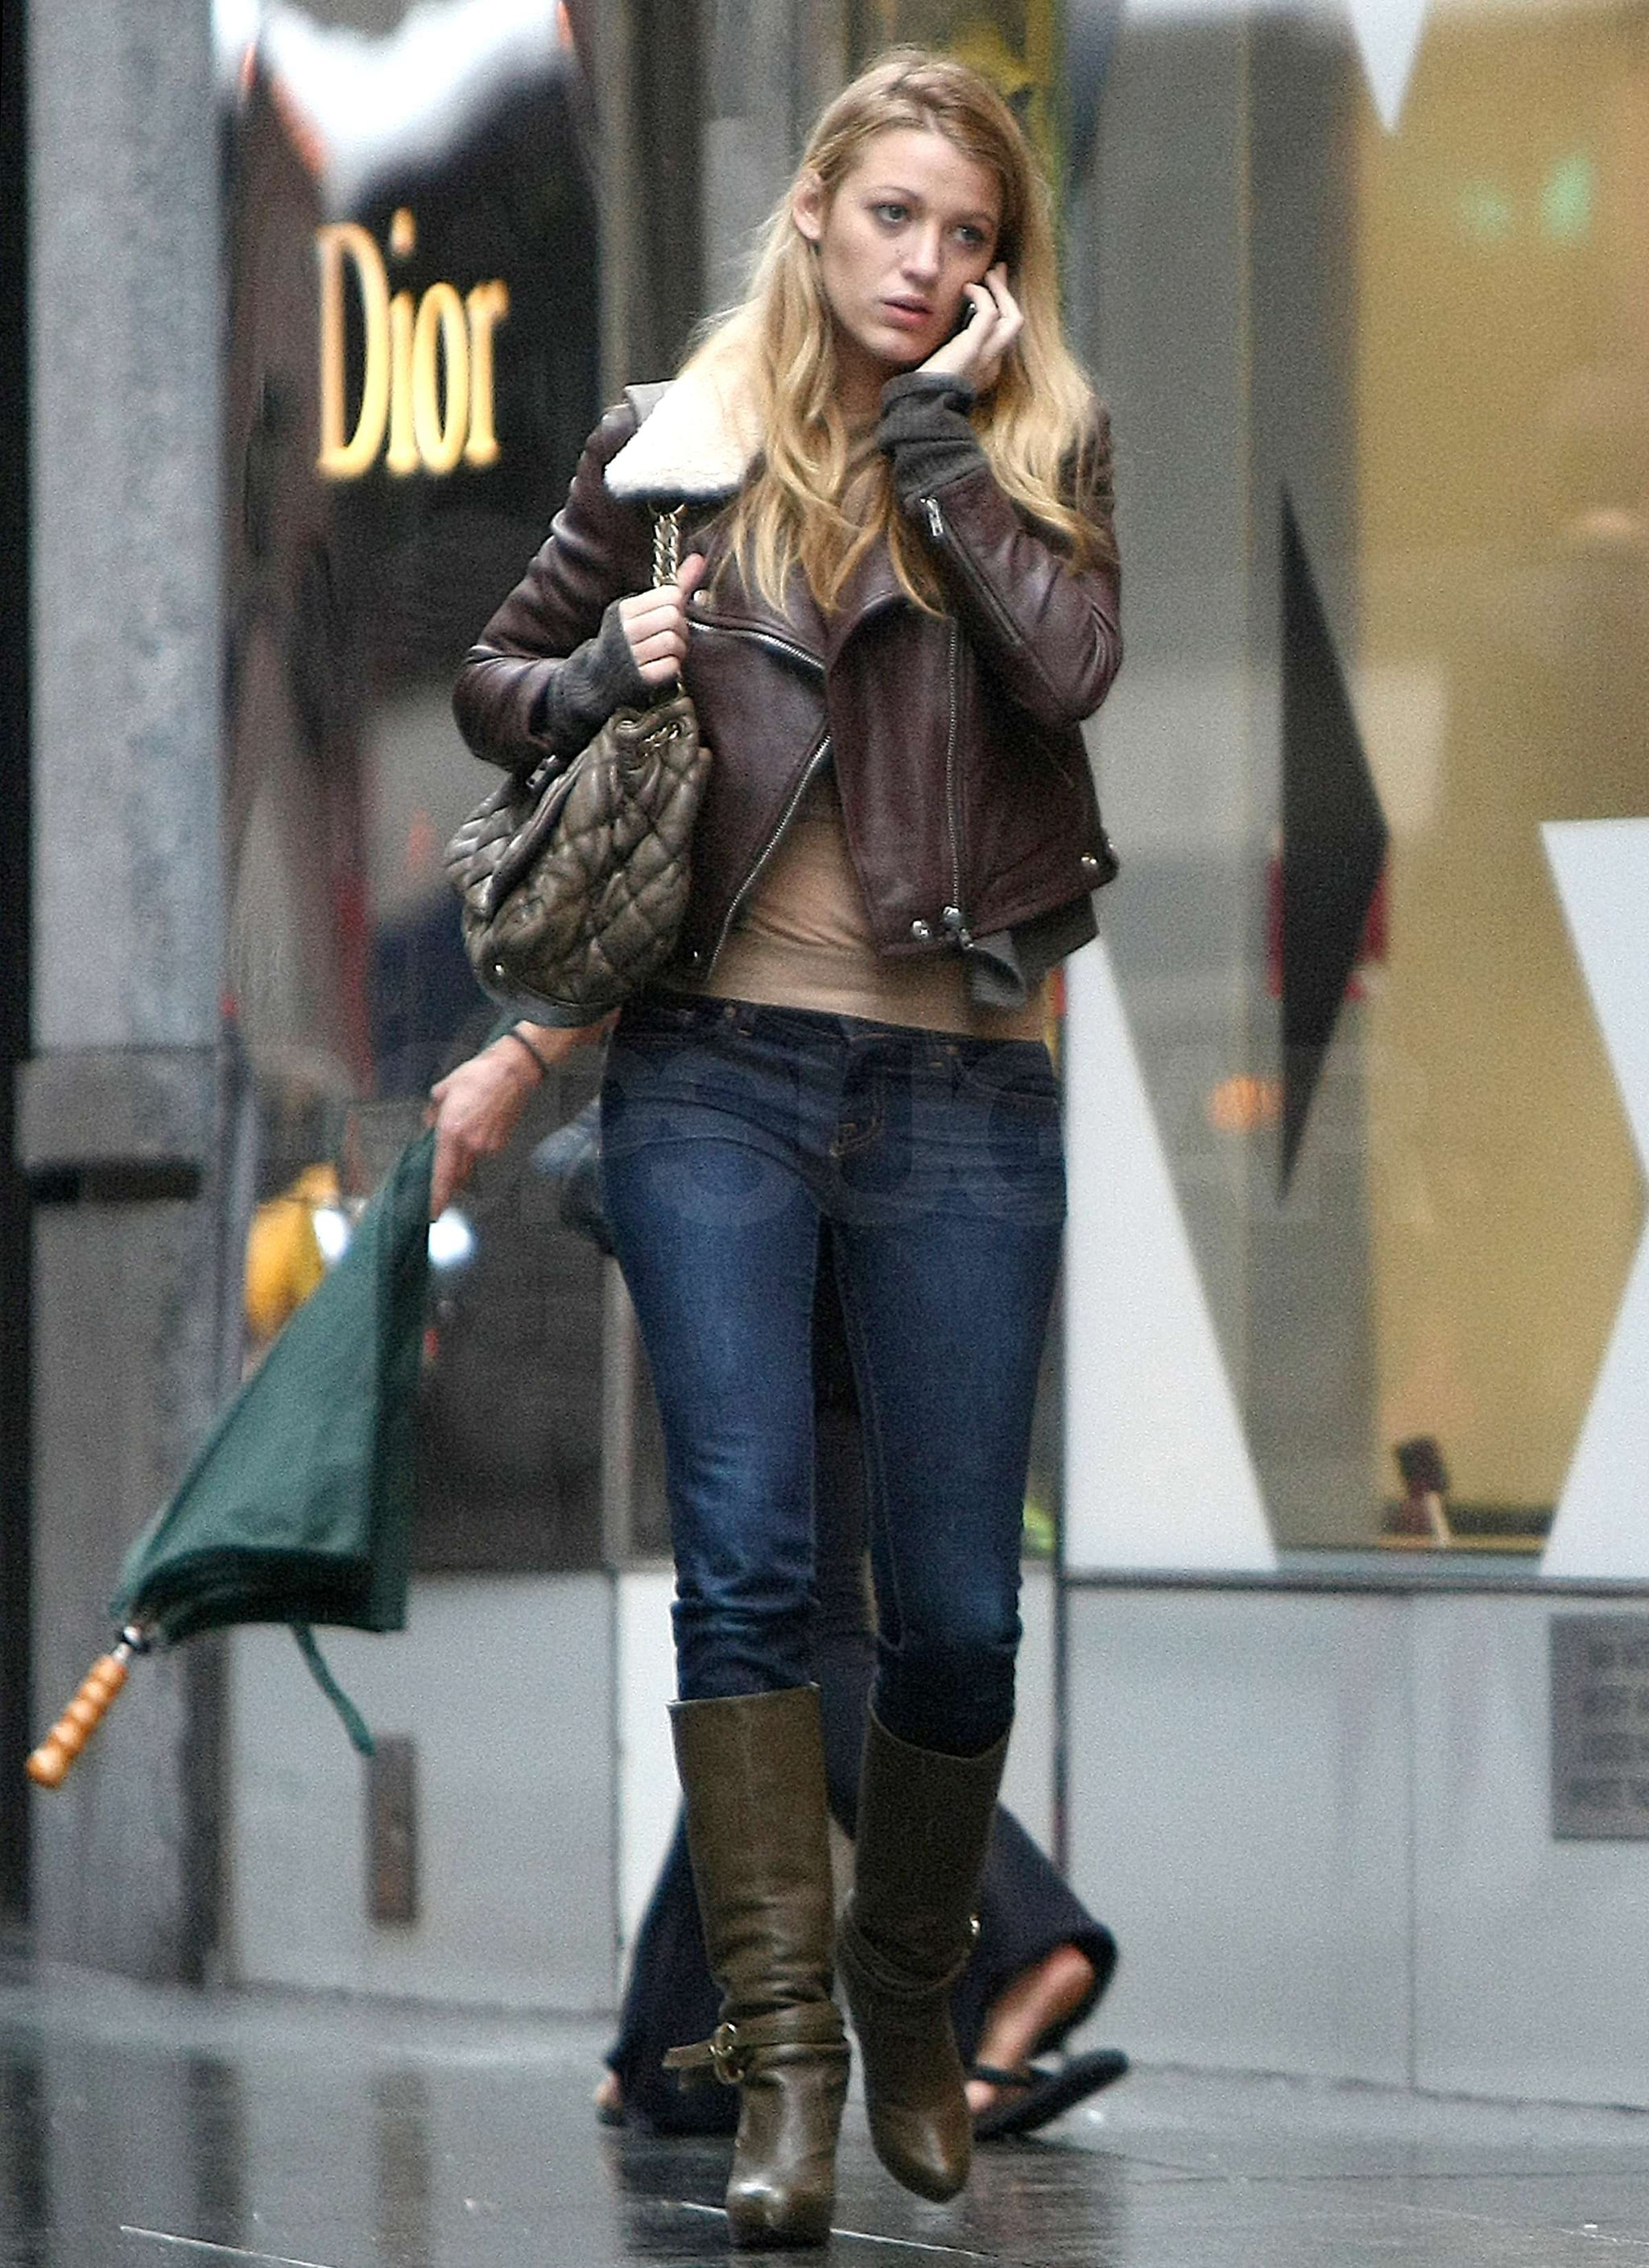 Photos of Blake Lively Shopping at Barneys in NYC ...